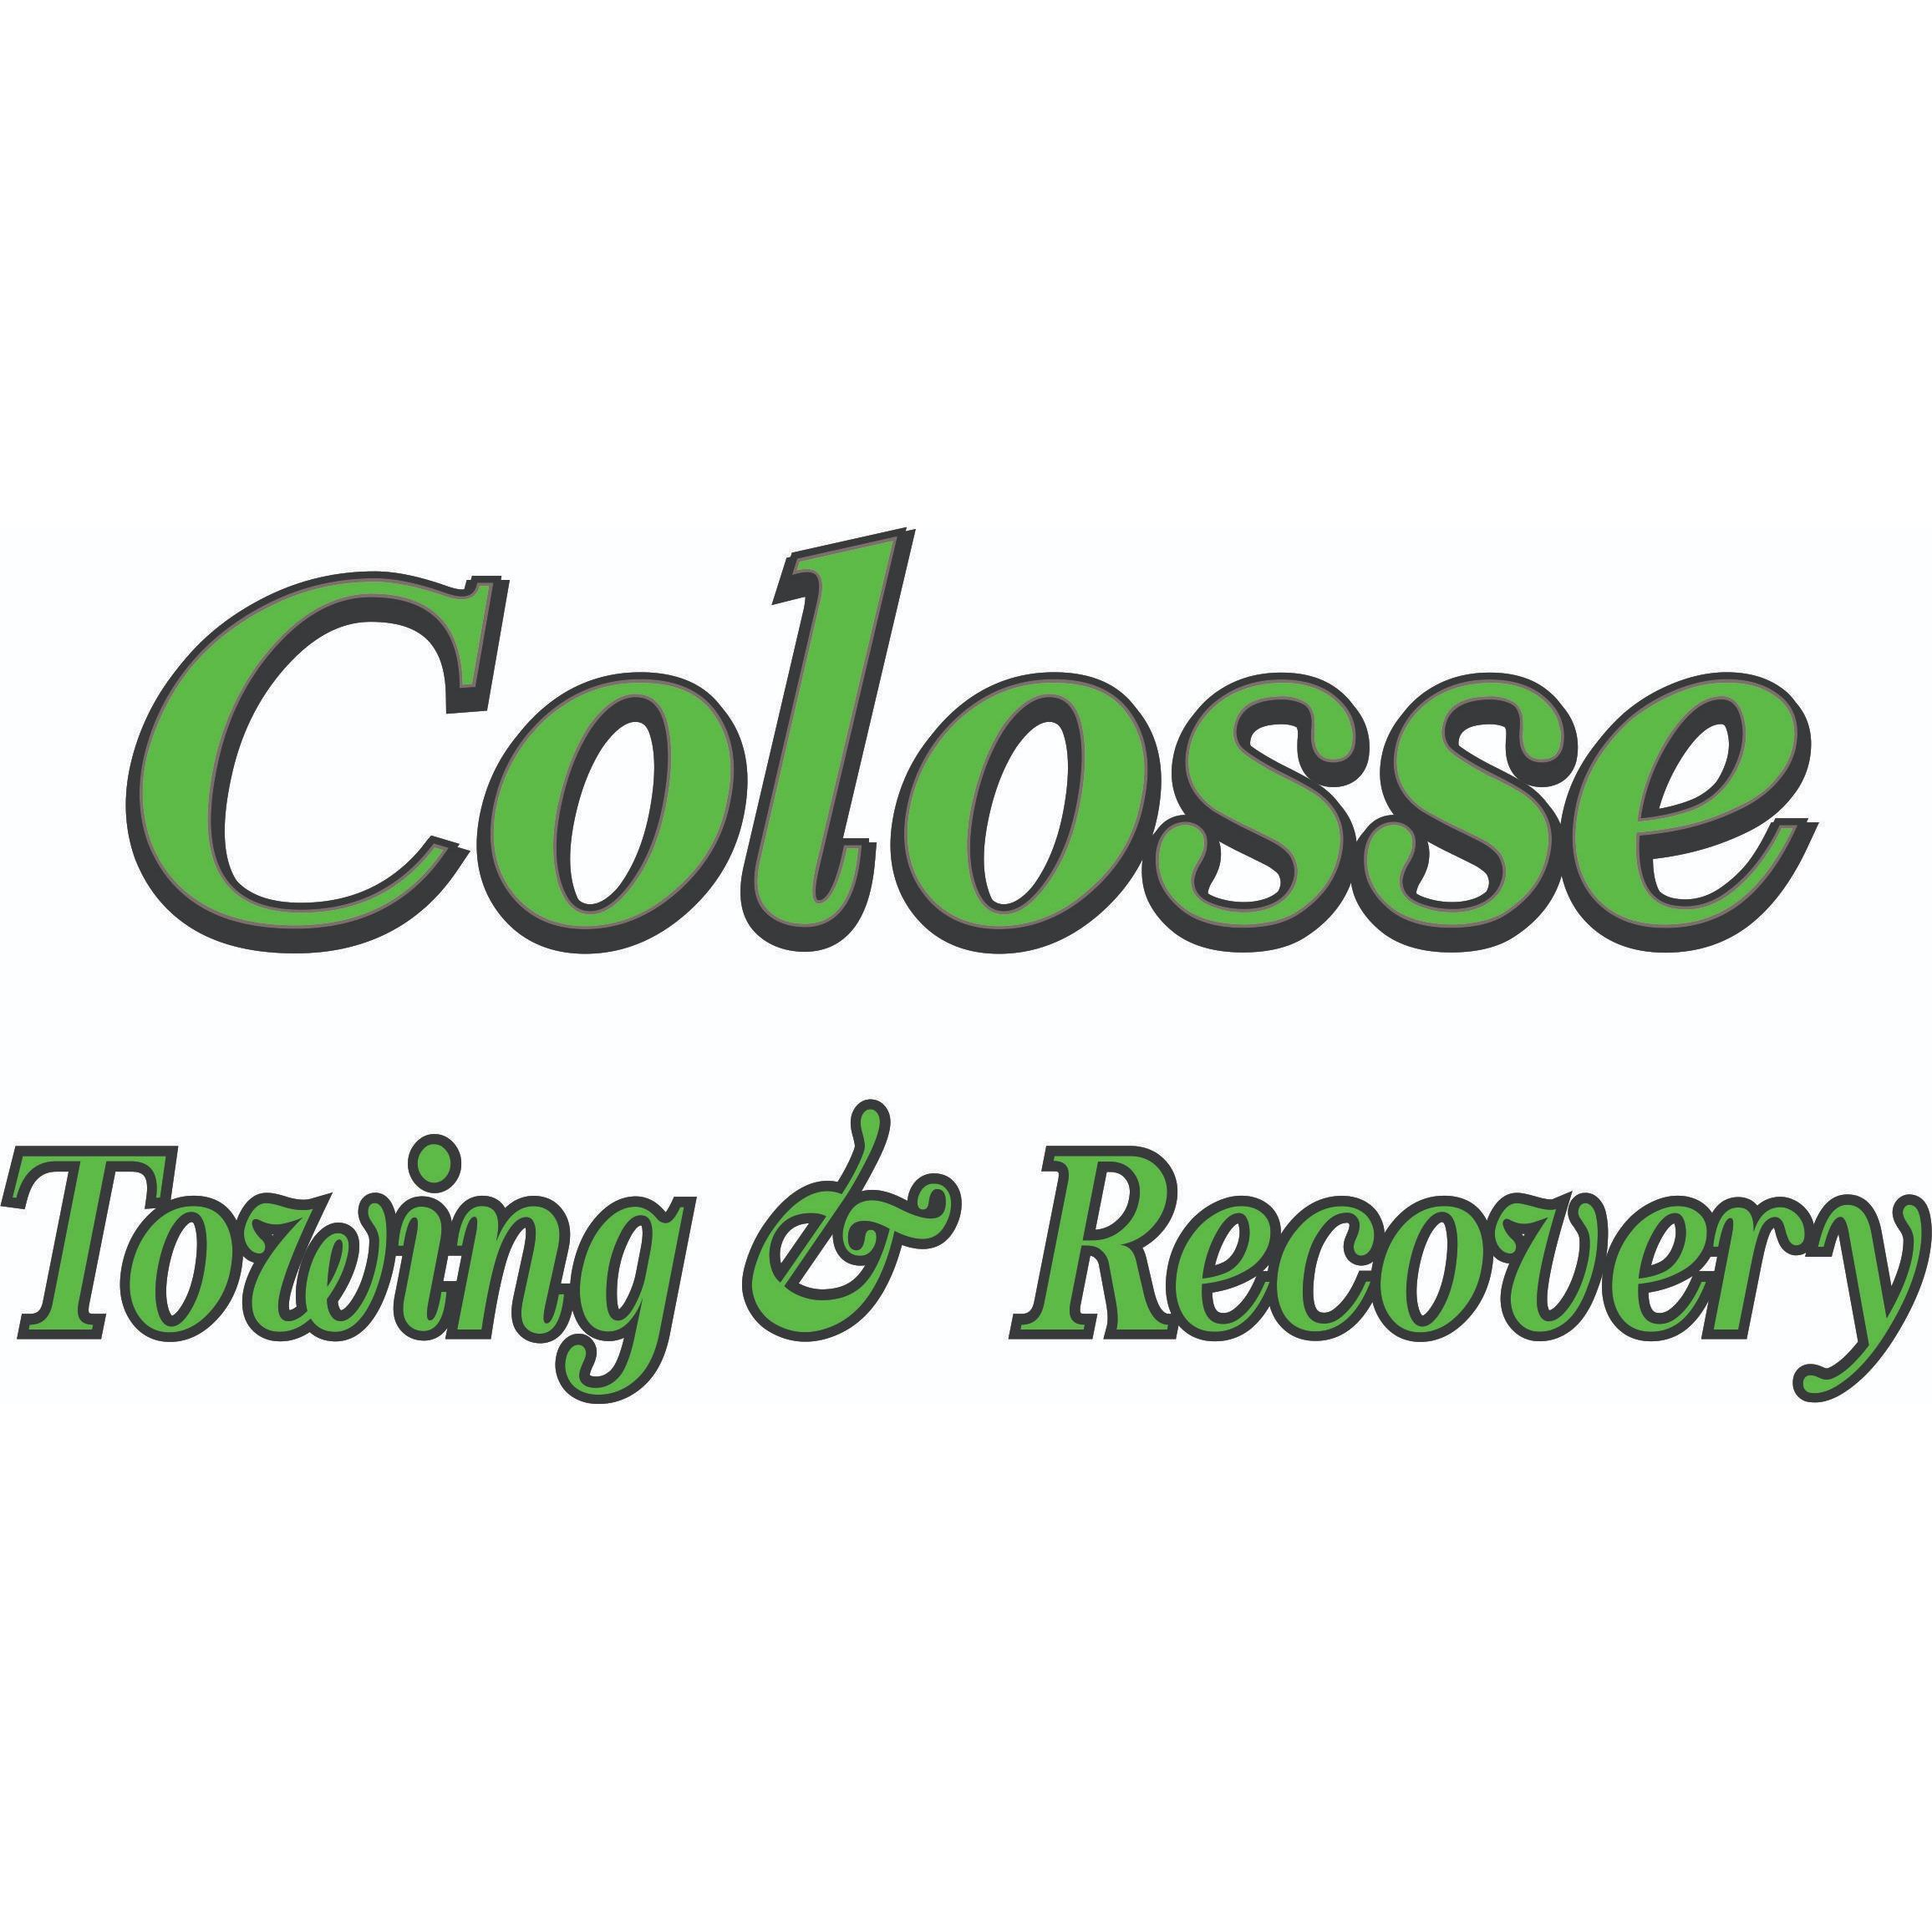 Colosse Towing & Recovery - Parish, NY 13131 - (315)591-7484 | ShowMeLocal.com